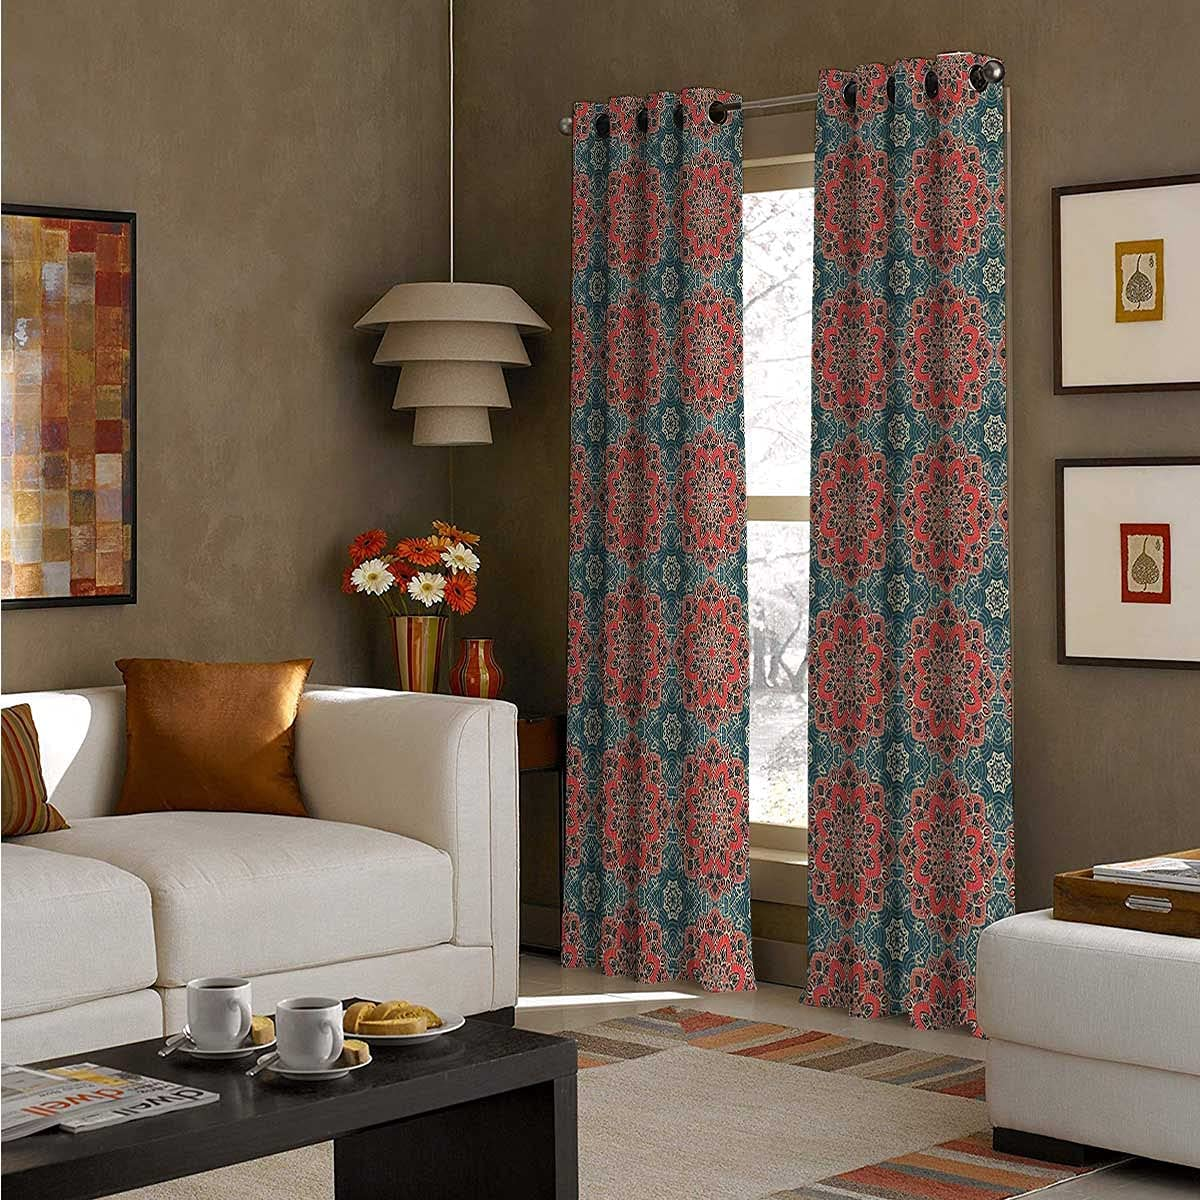 Curtain Blackout 108 Inch Long Flowers Panel Se Bombing new work Super sale period limited Culture